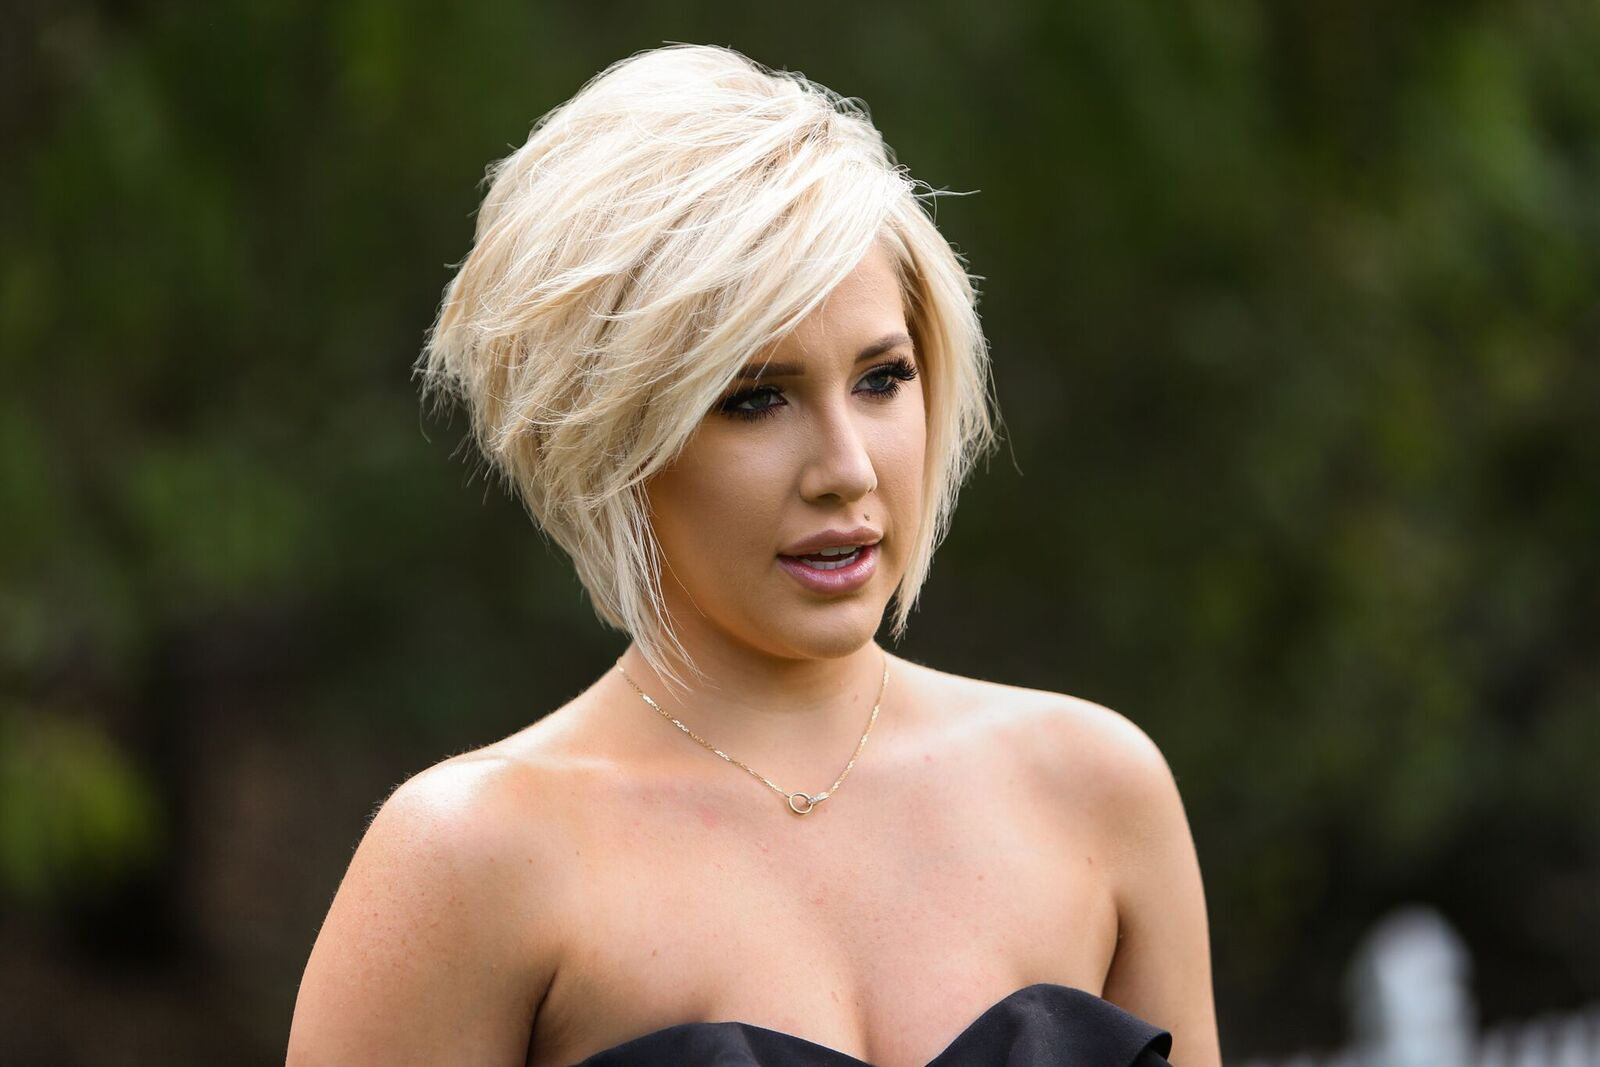 """Reality TV star Savannah Chrisley visits Hallmark's """"Home & Family"""" at Universal Studios Hollywood on March 27, 2019 in Universal City, California. 